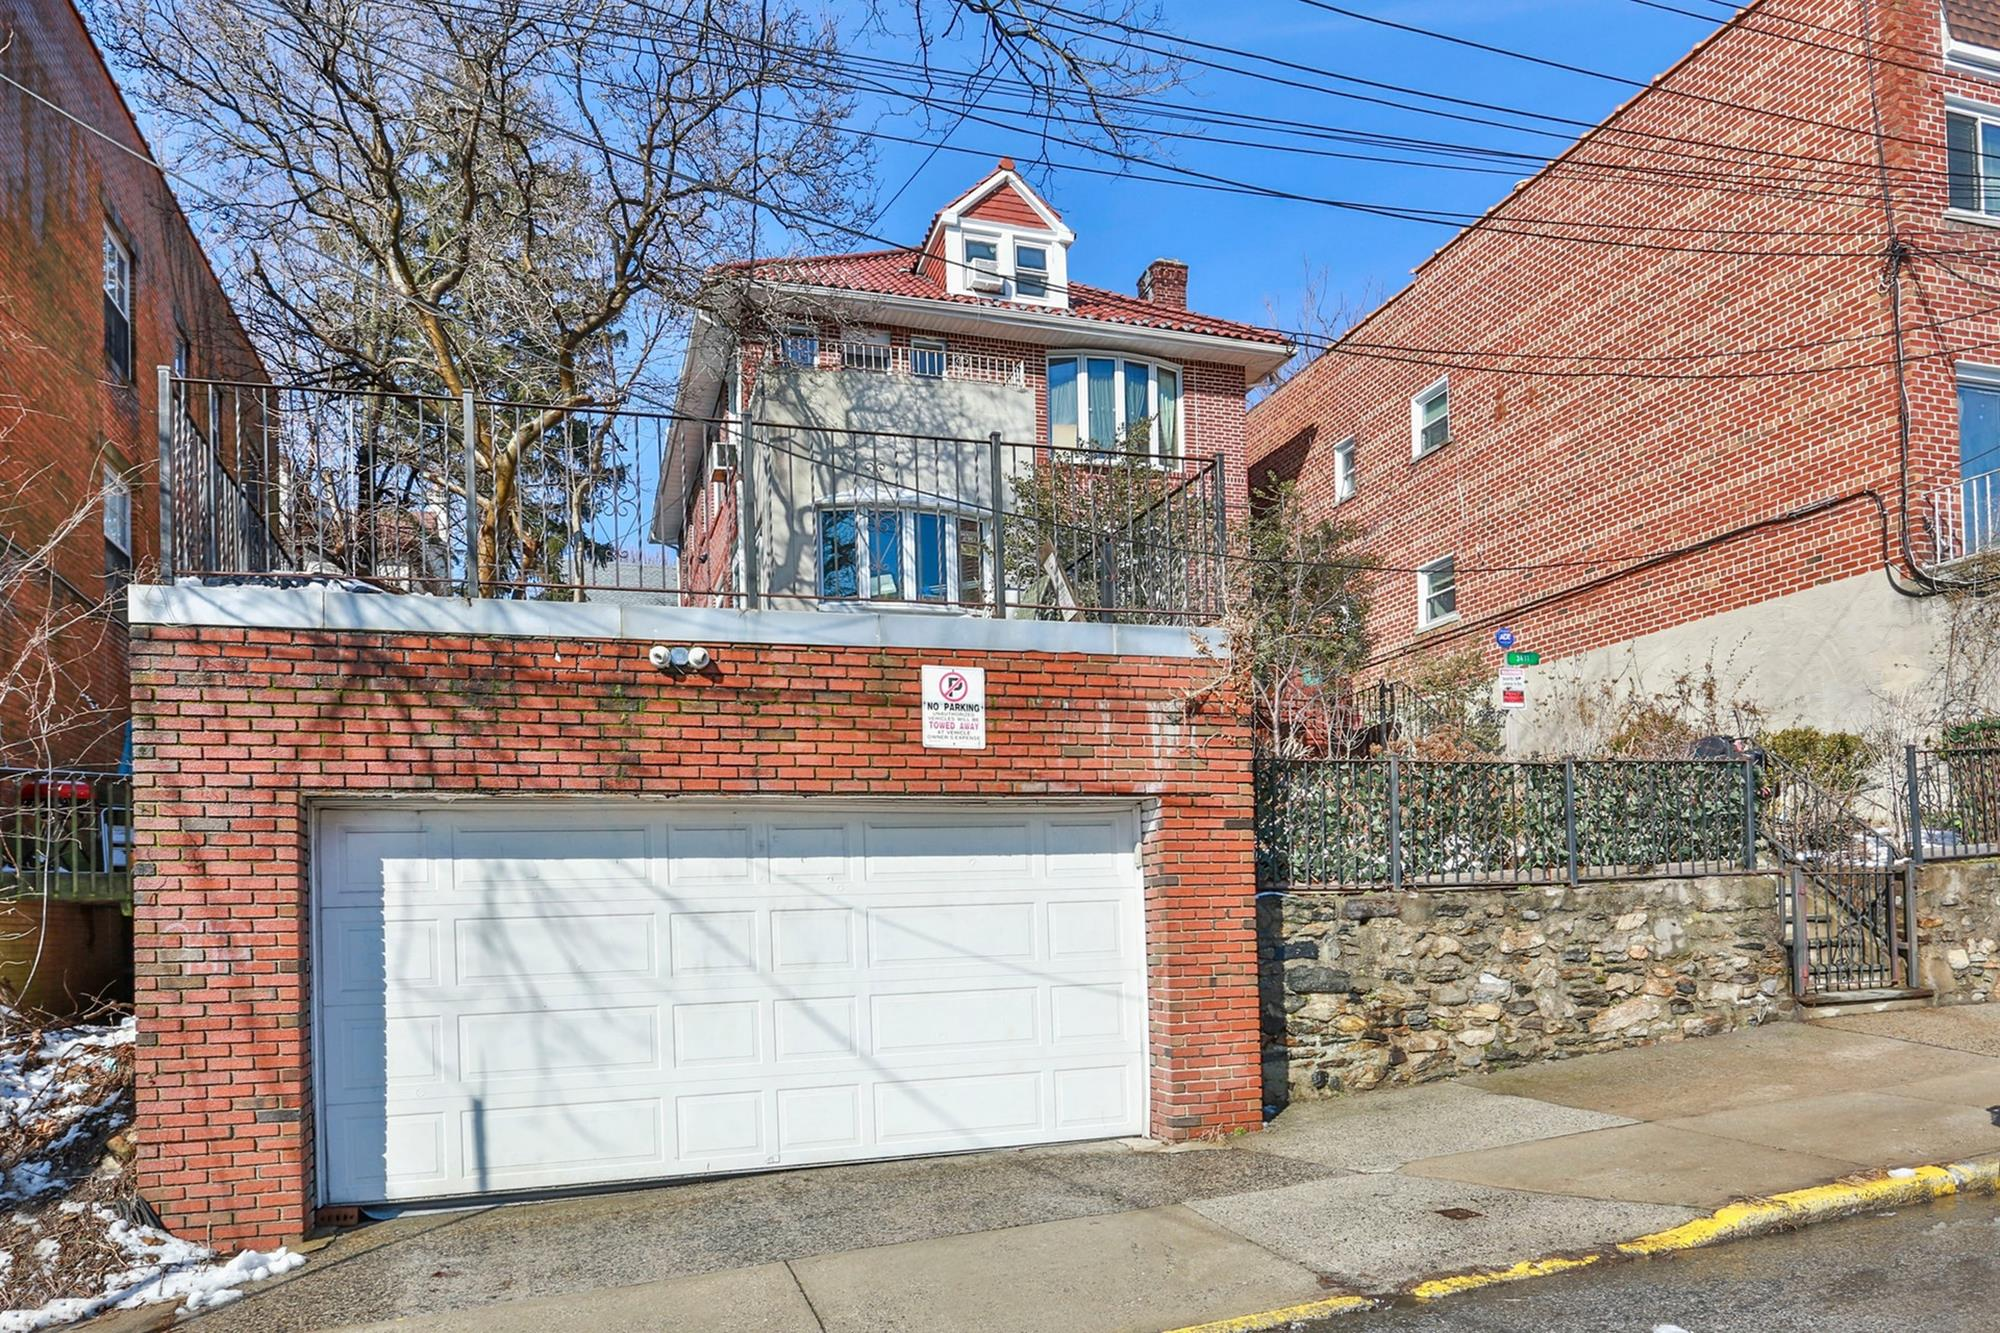 2-Family Brick House w/ Garage, Patio & Roof Terrace at 3411 Riverdale Ave.